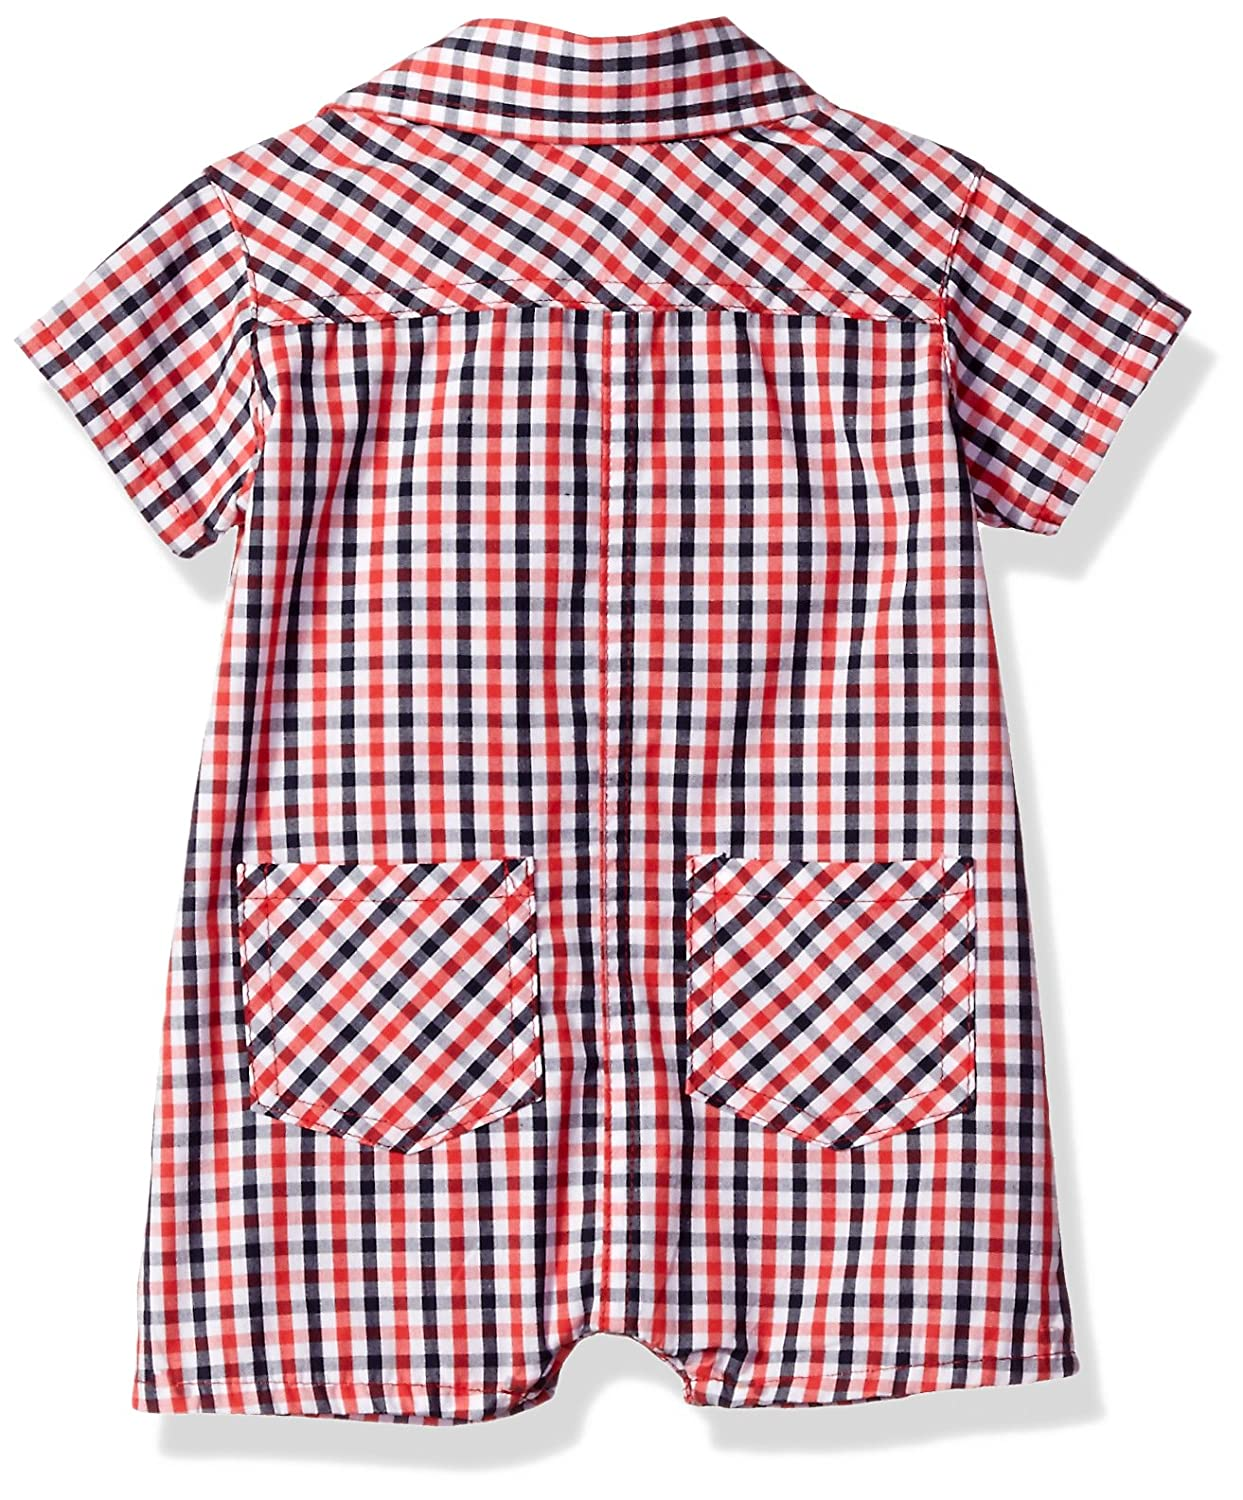 d1eb669b63f5 Amazon.com  U.S. Polo Assn. Baby Boys  Woven Romper